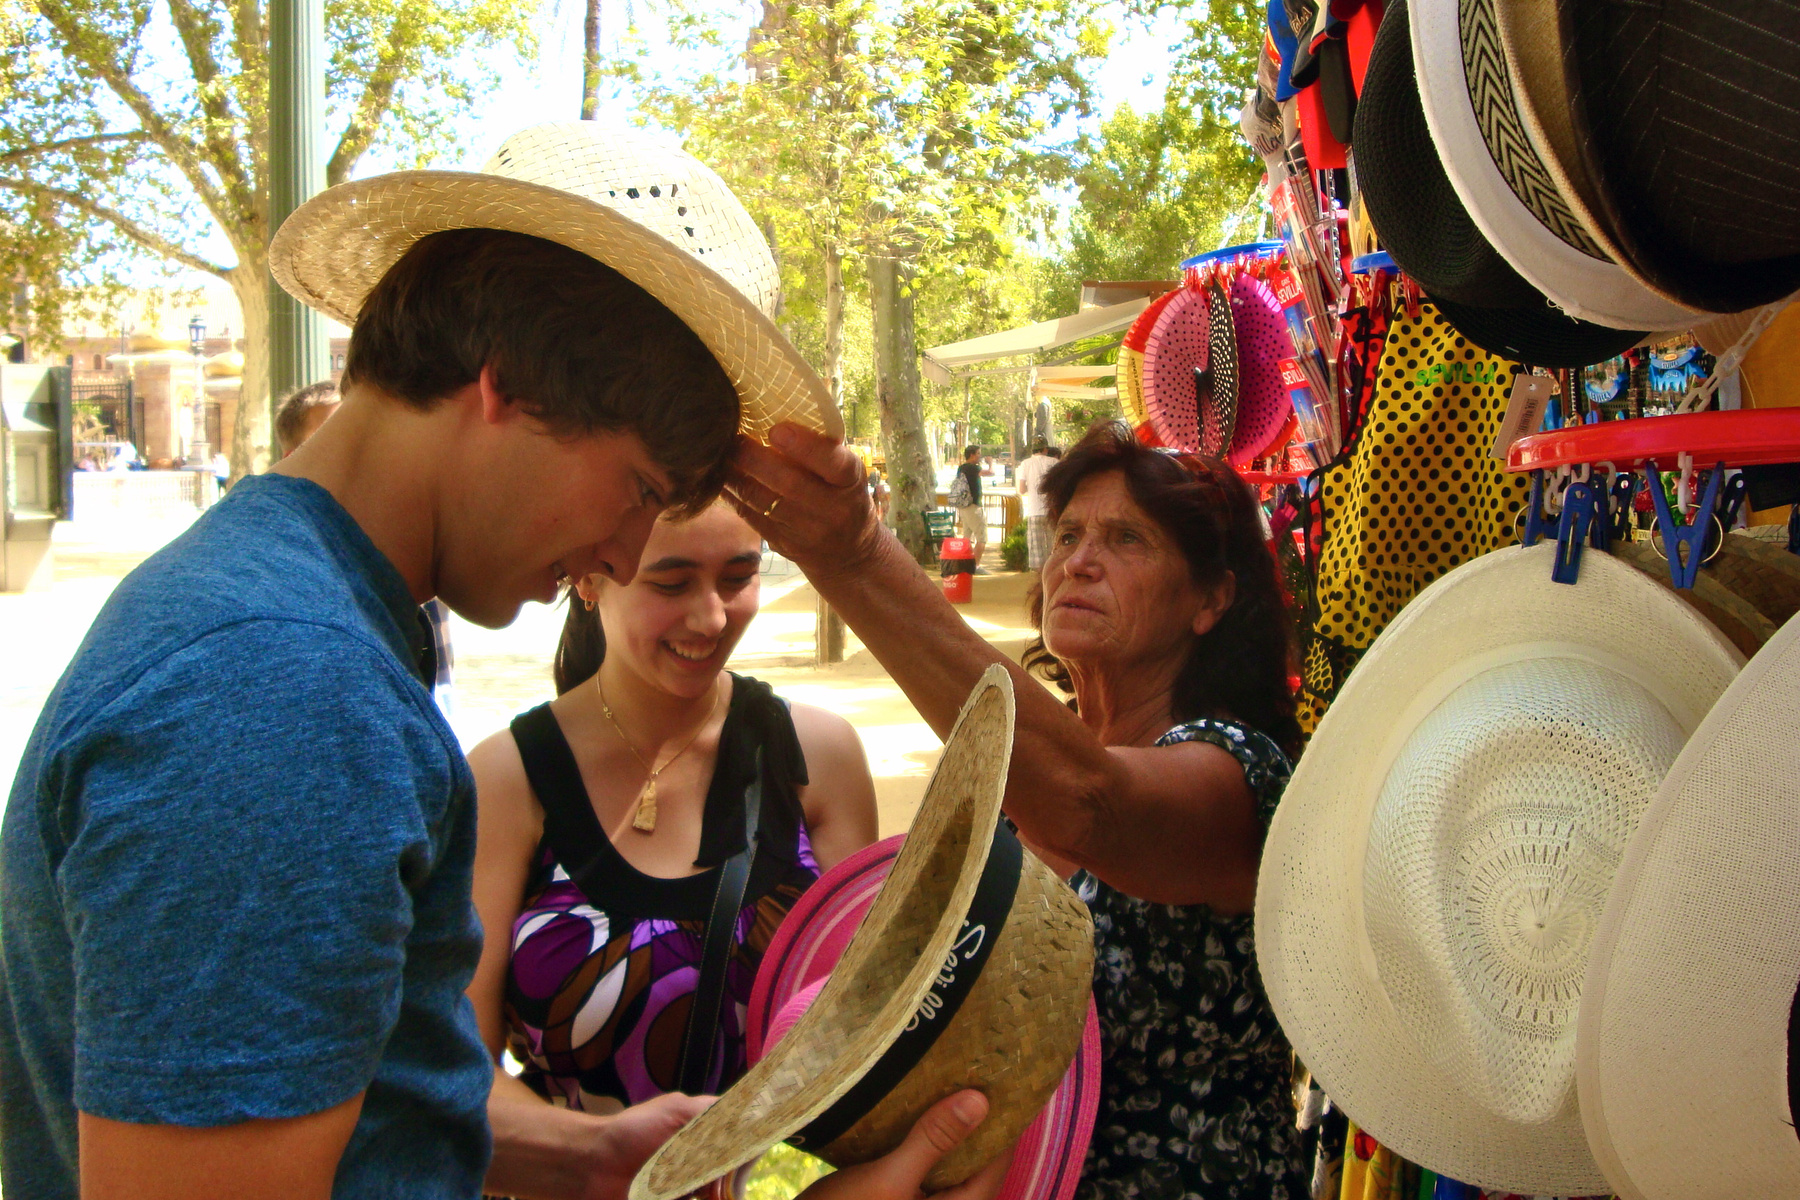 A U N E student interacts with a street vendor selling hats in Latin America